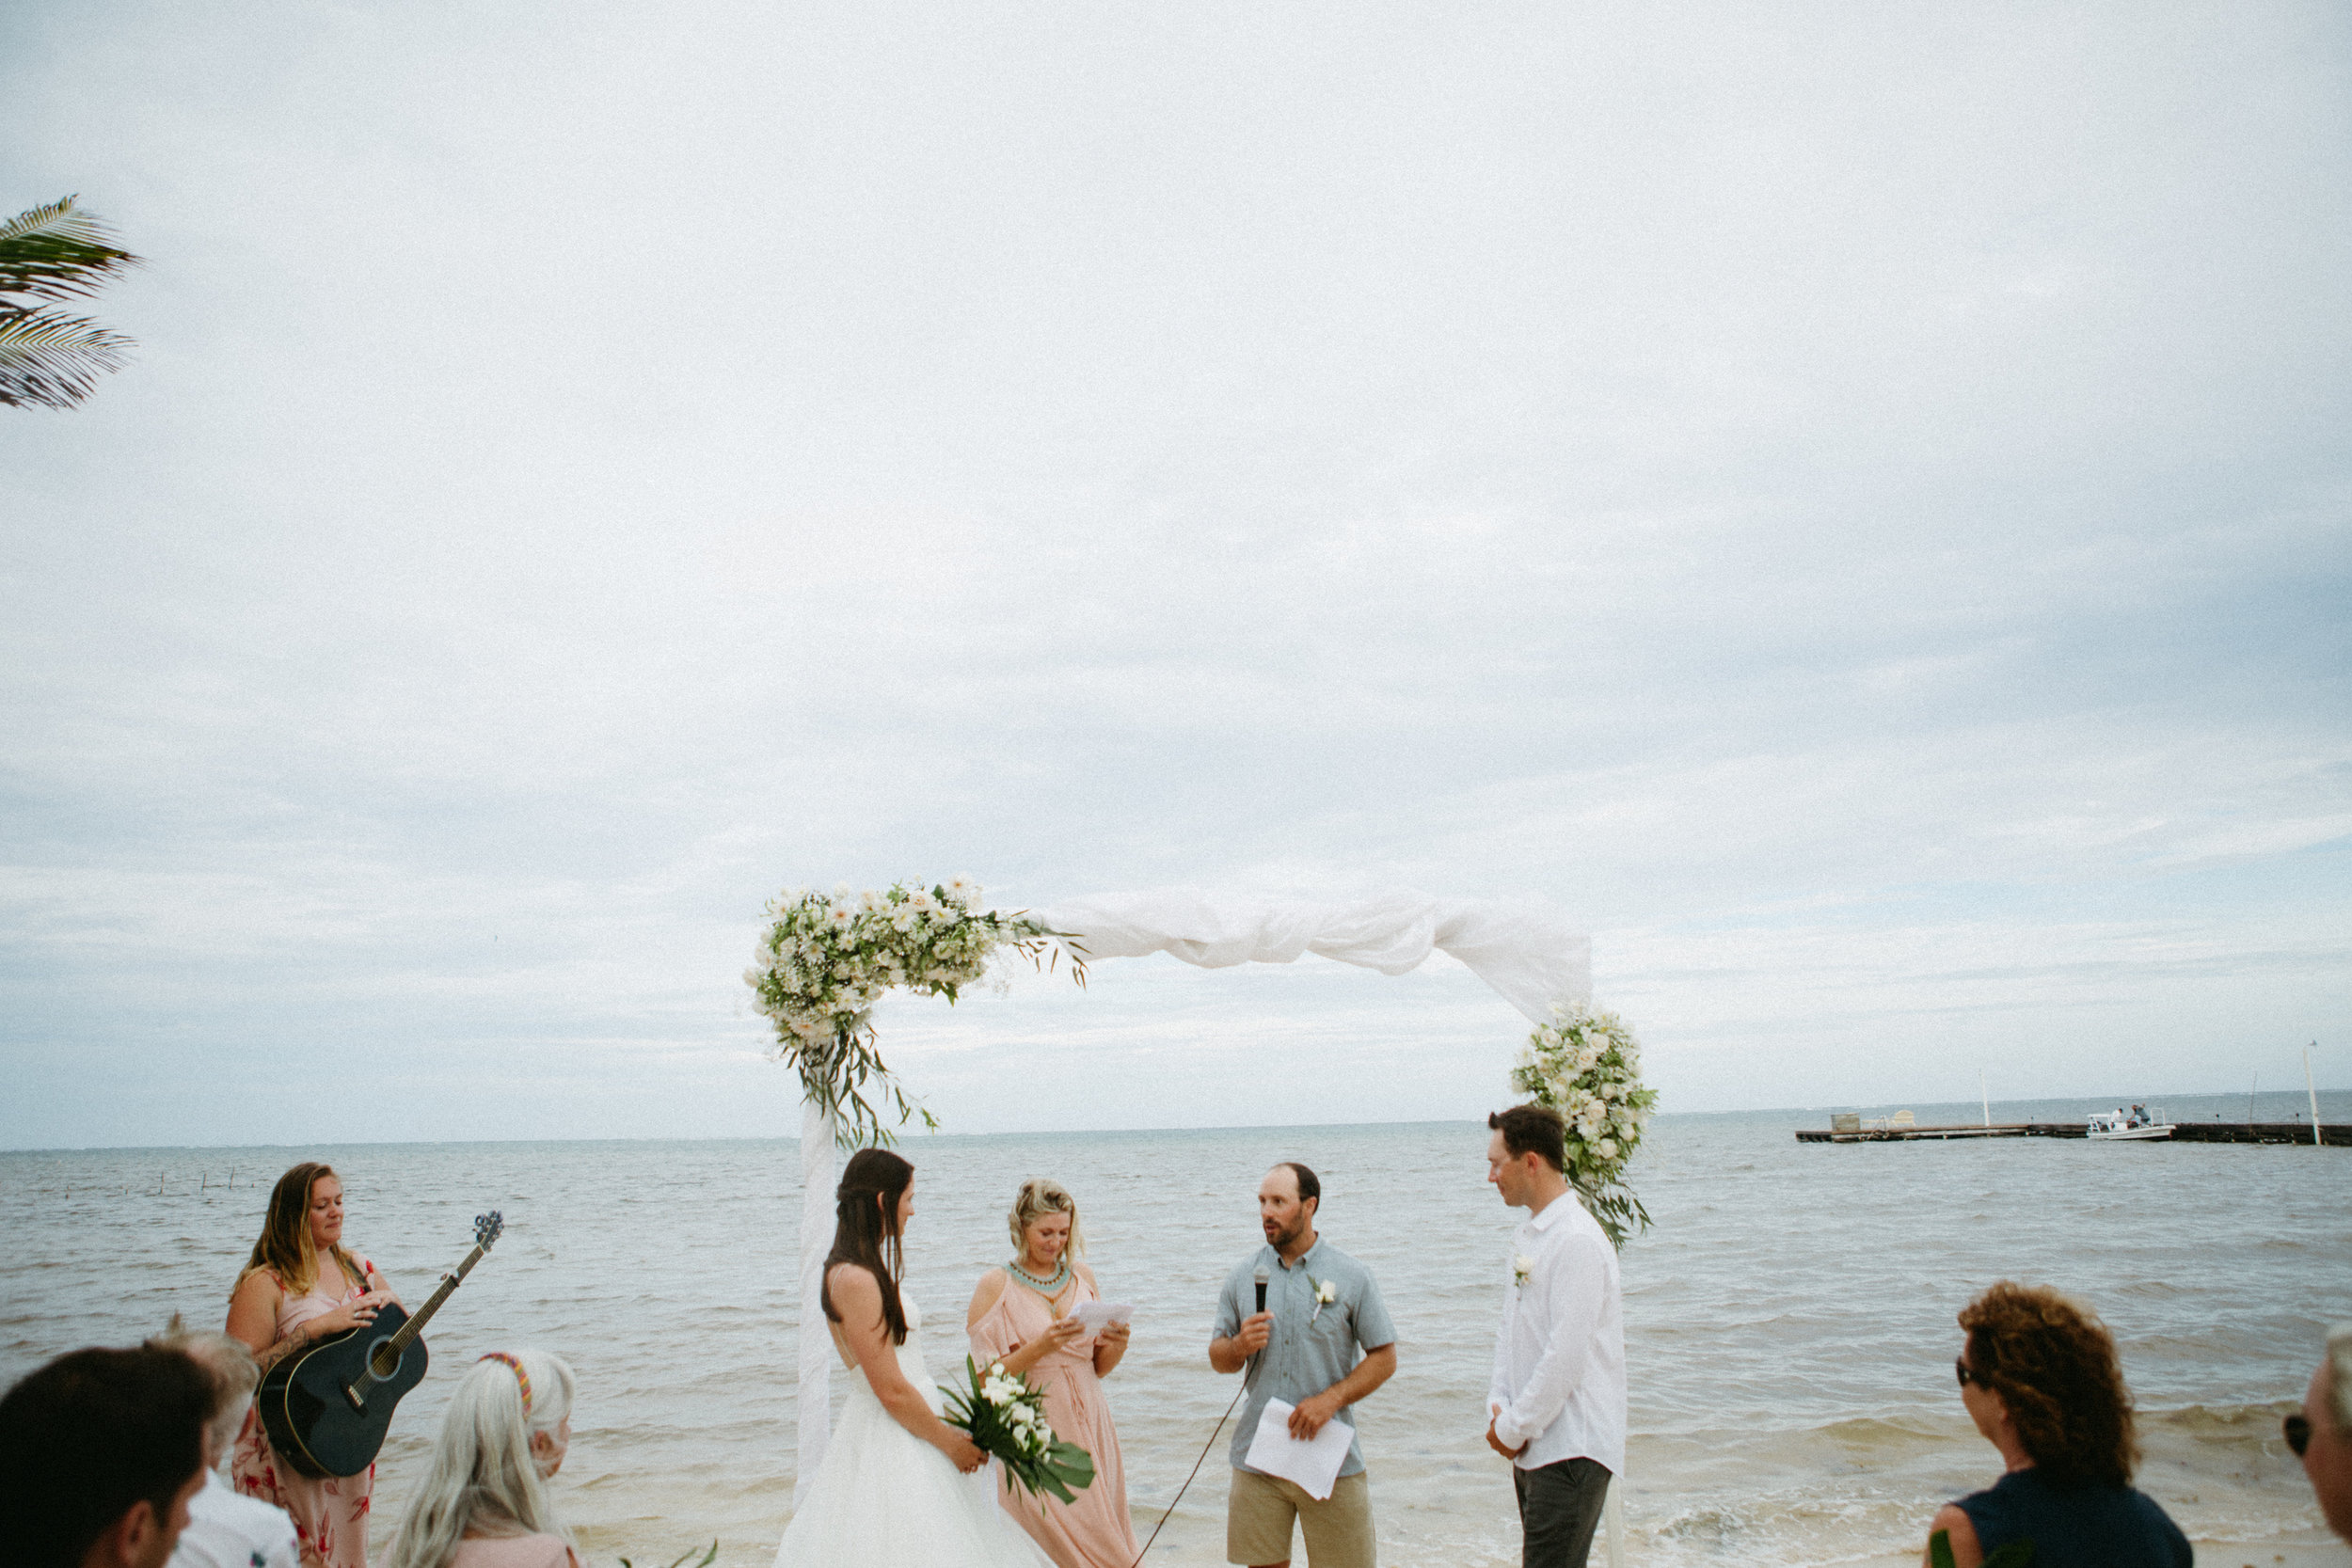 san-pescador-belize-wedding-christinemariephoto-j-k-91.jpg